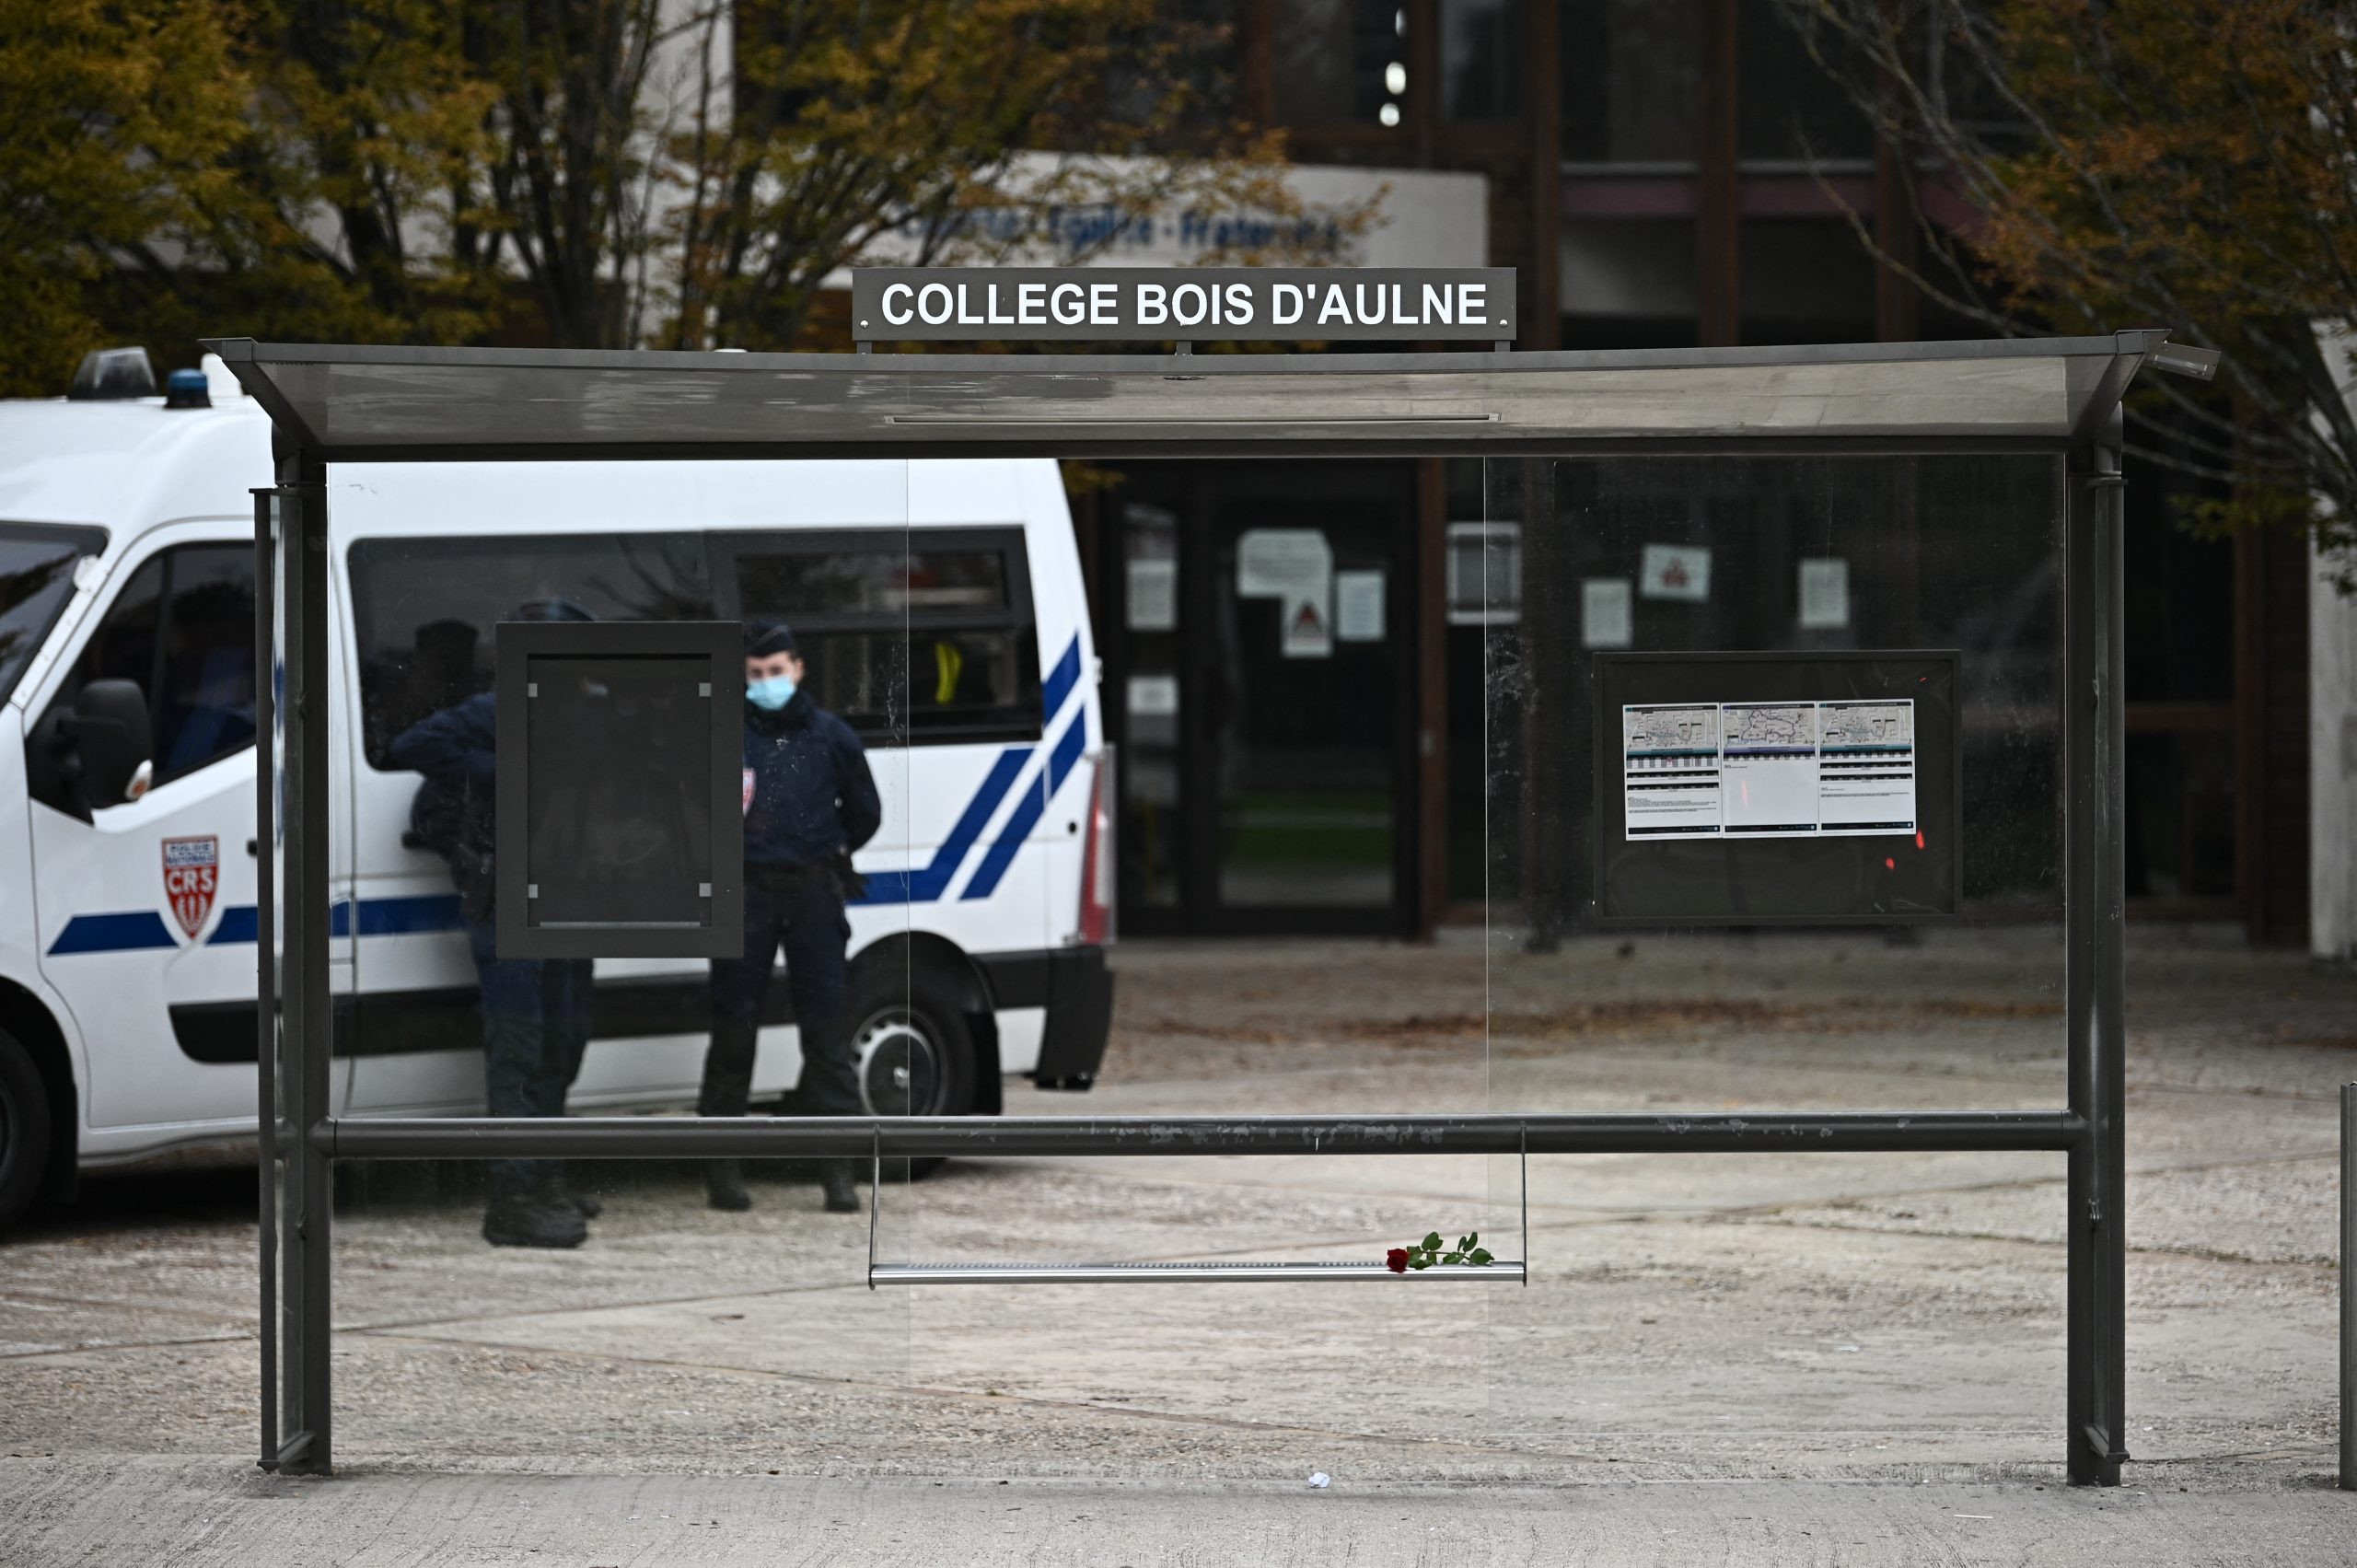 Teacher beheaded in France, suspected killer shot dead by police